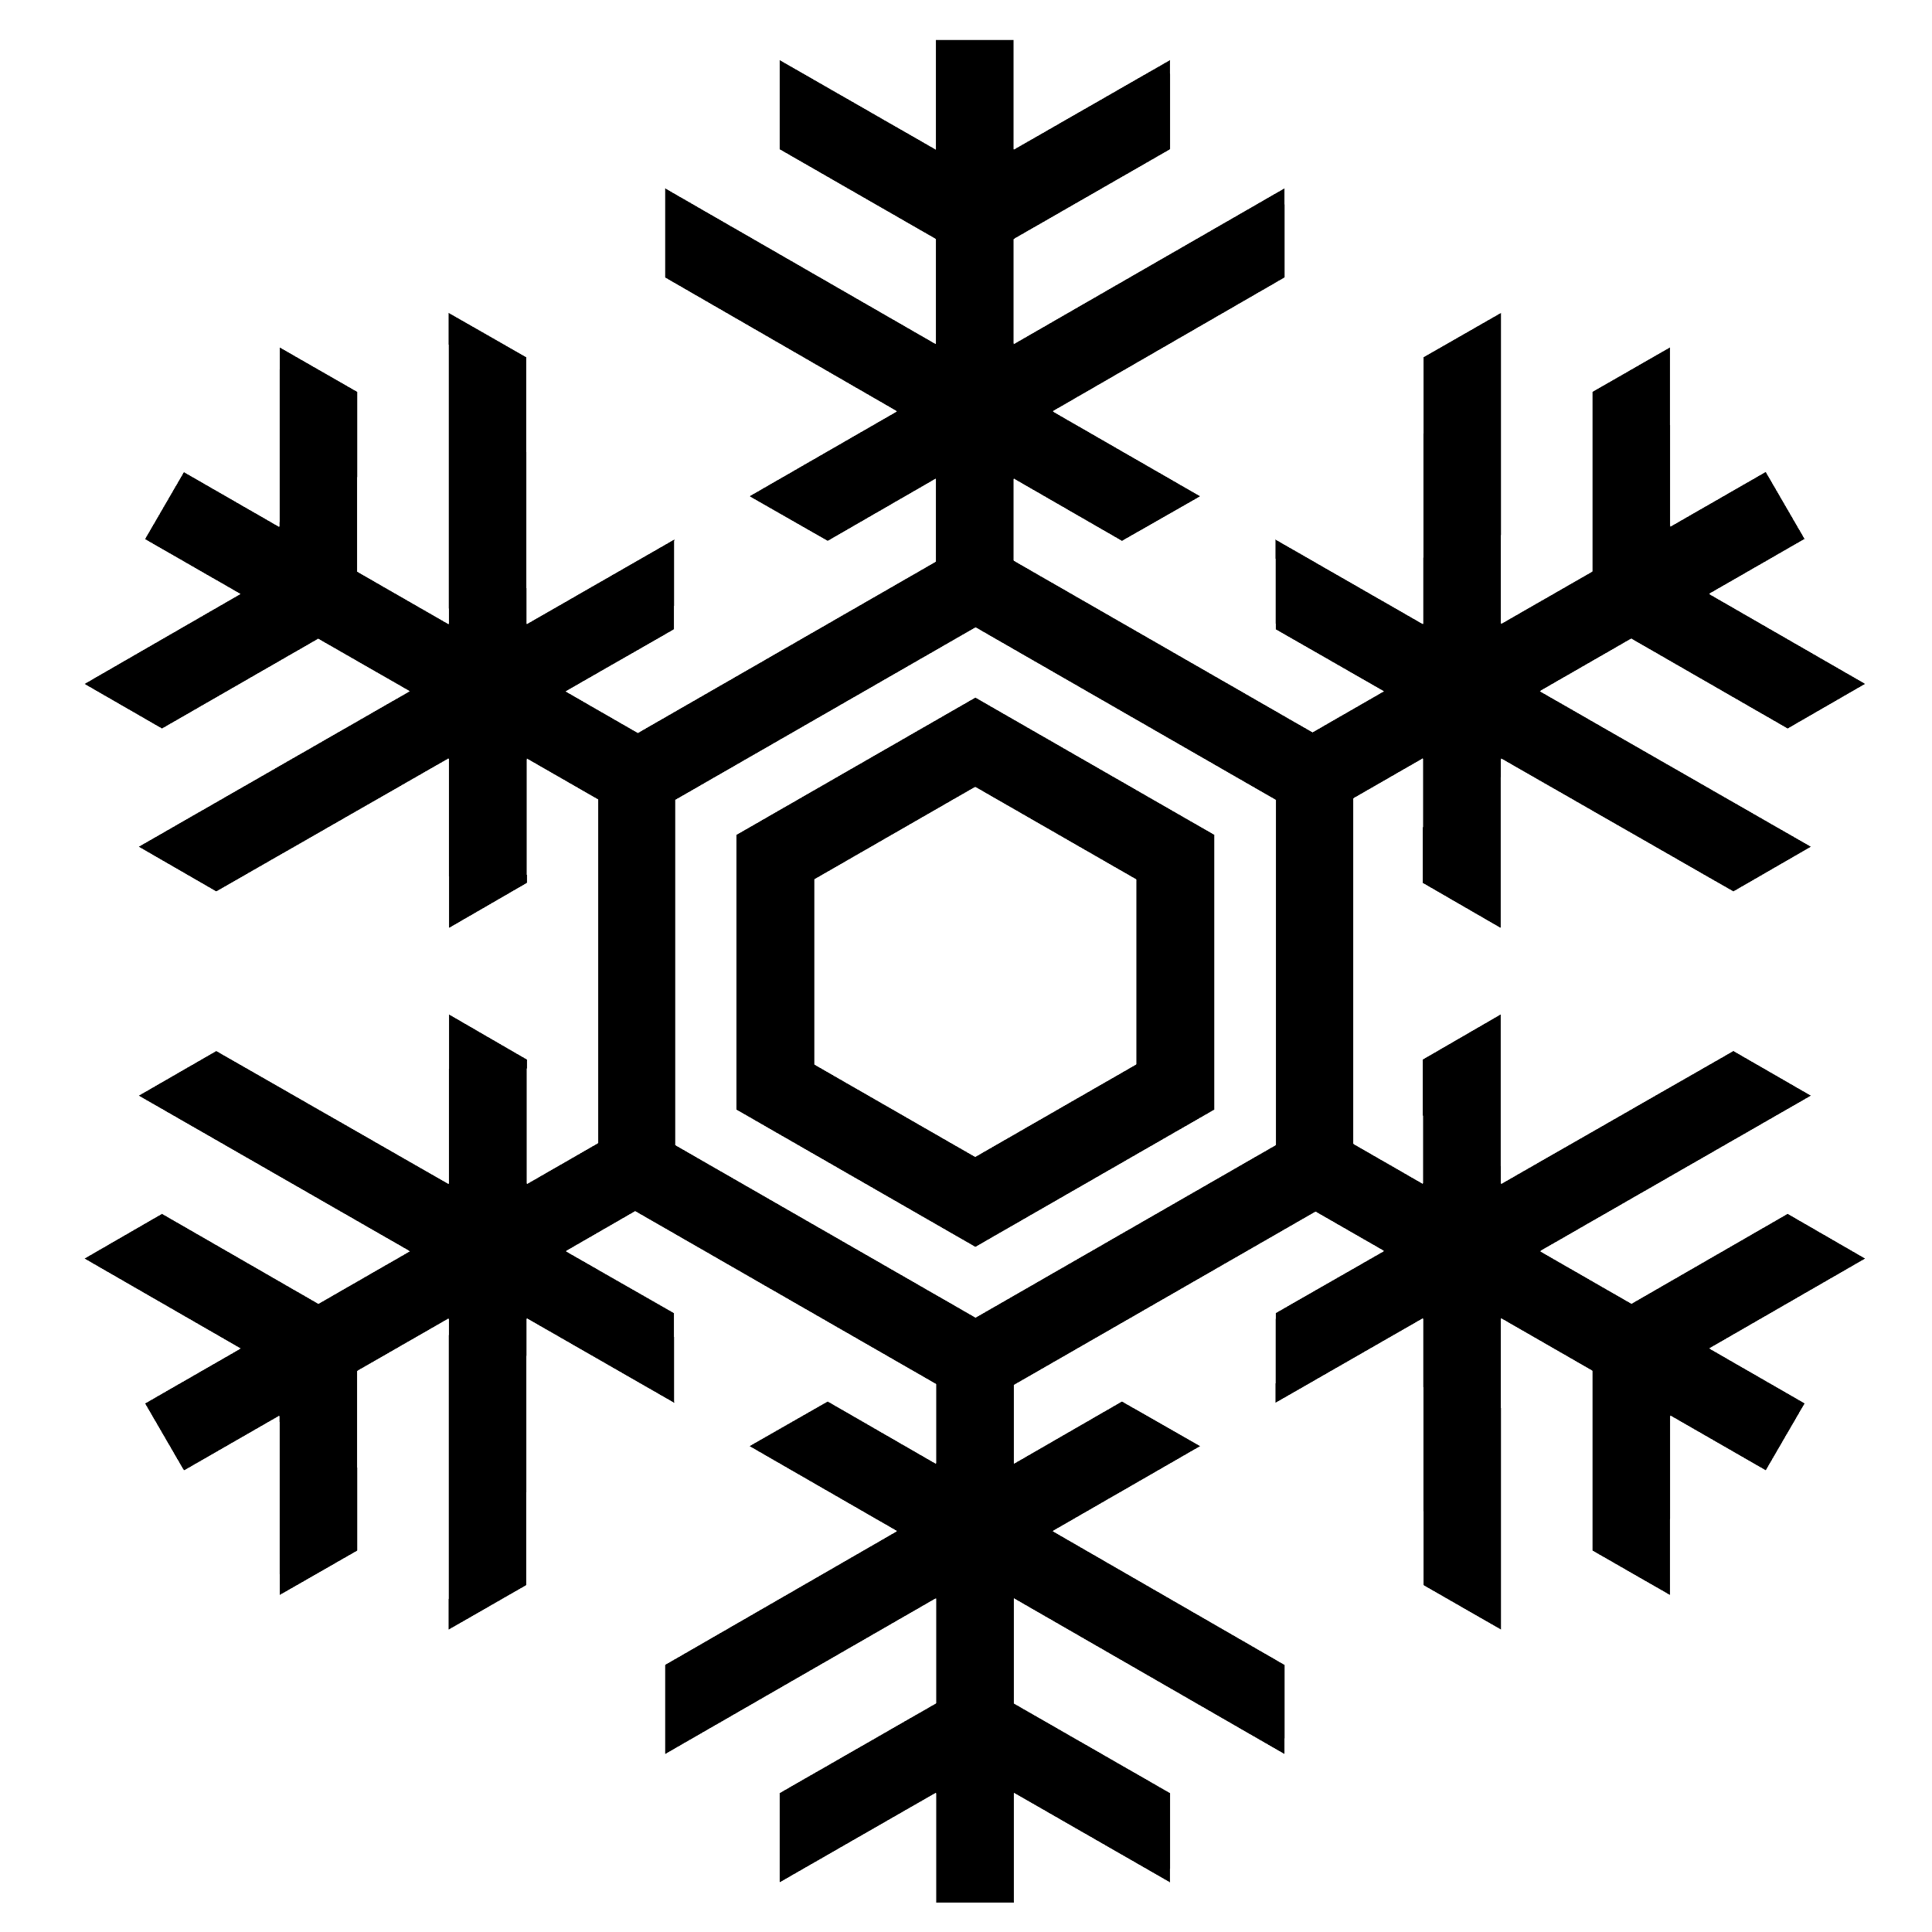 Snowflakes Png Image Snowflakes Drawing Snowflake Coloring Pages Snowflake Silhouette